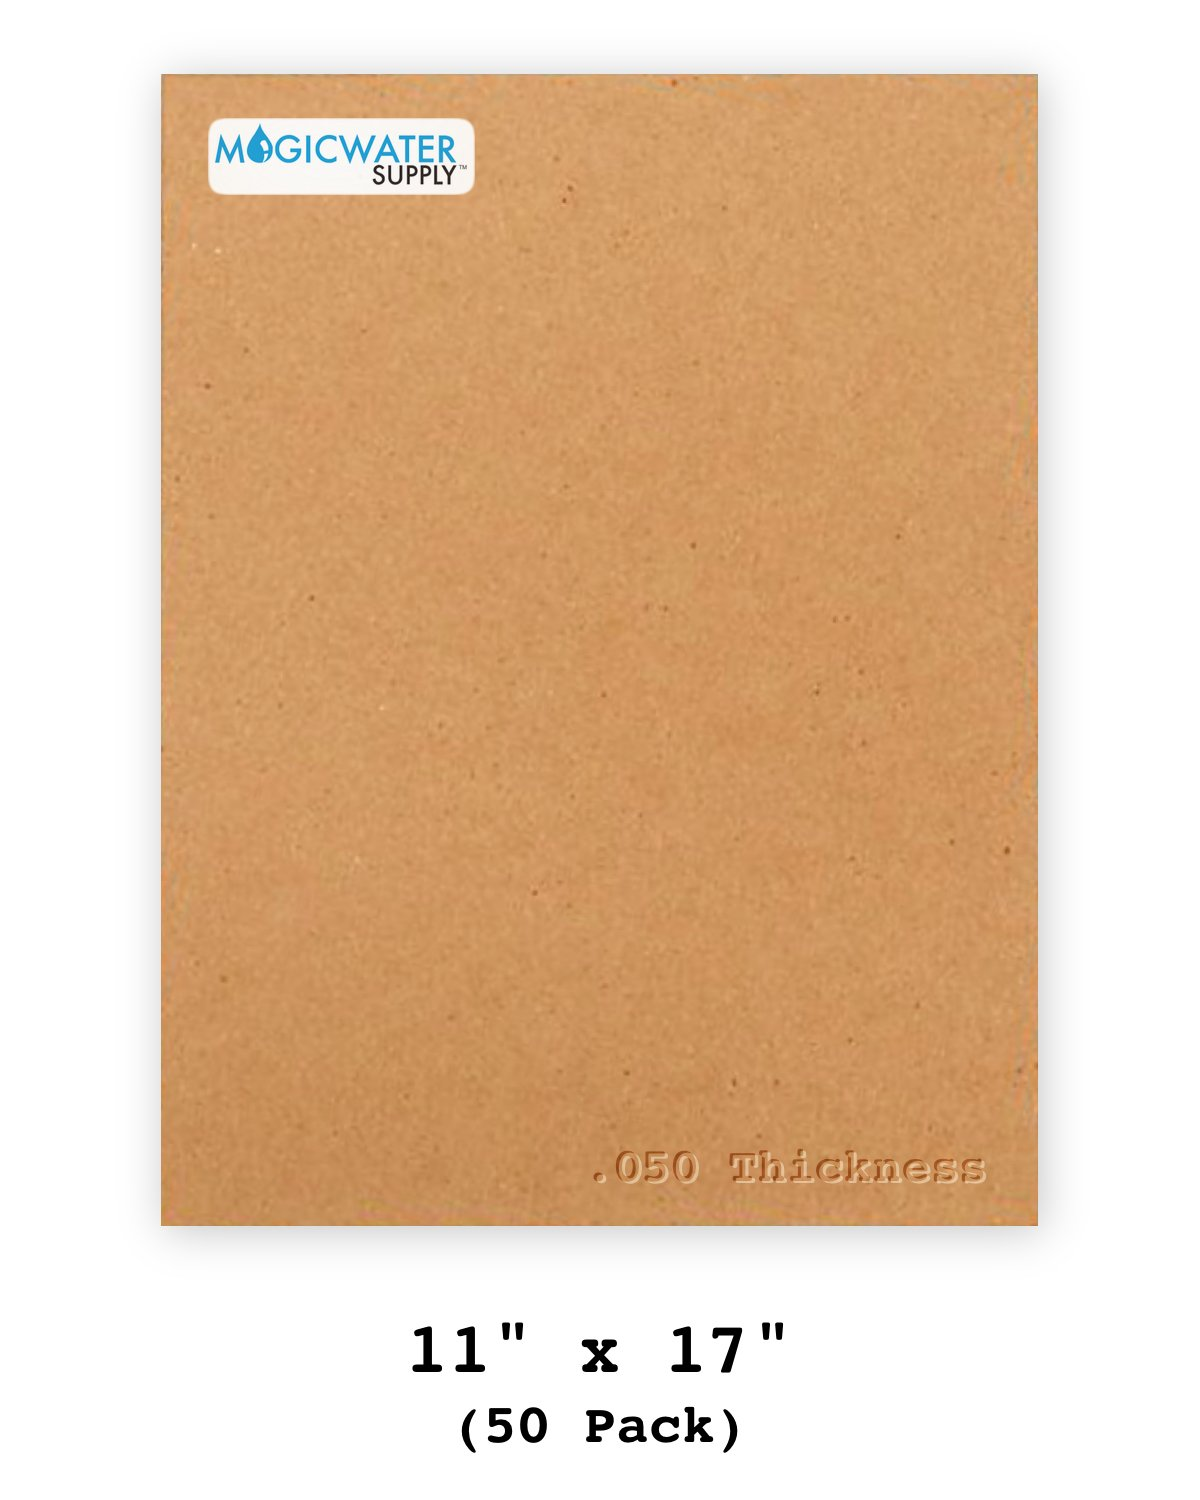 50 Chipboard Sheets 11 x 17 inch - 50pt (Point) Heavy Weight Brown Kraft Cardboard for Scrapbooking & Picture Frame Backing (.050 Caliper Thick) Paper Board | MagicWater Supply